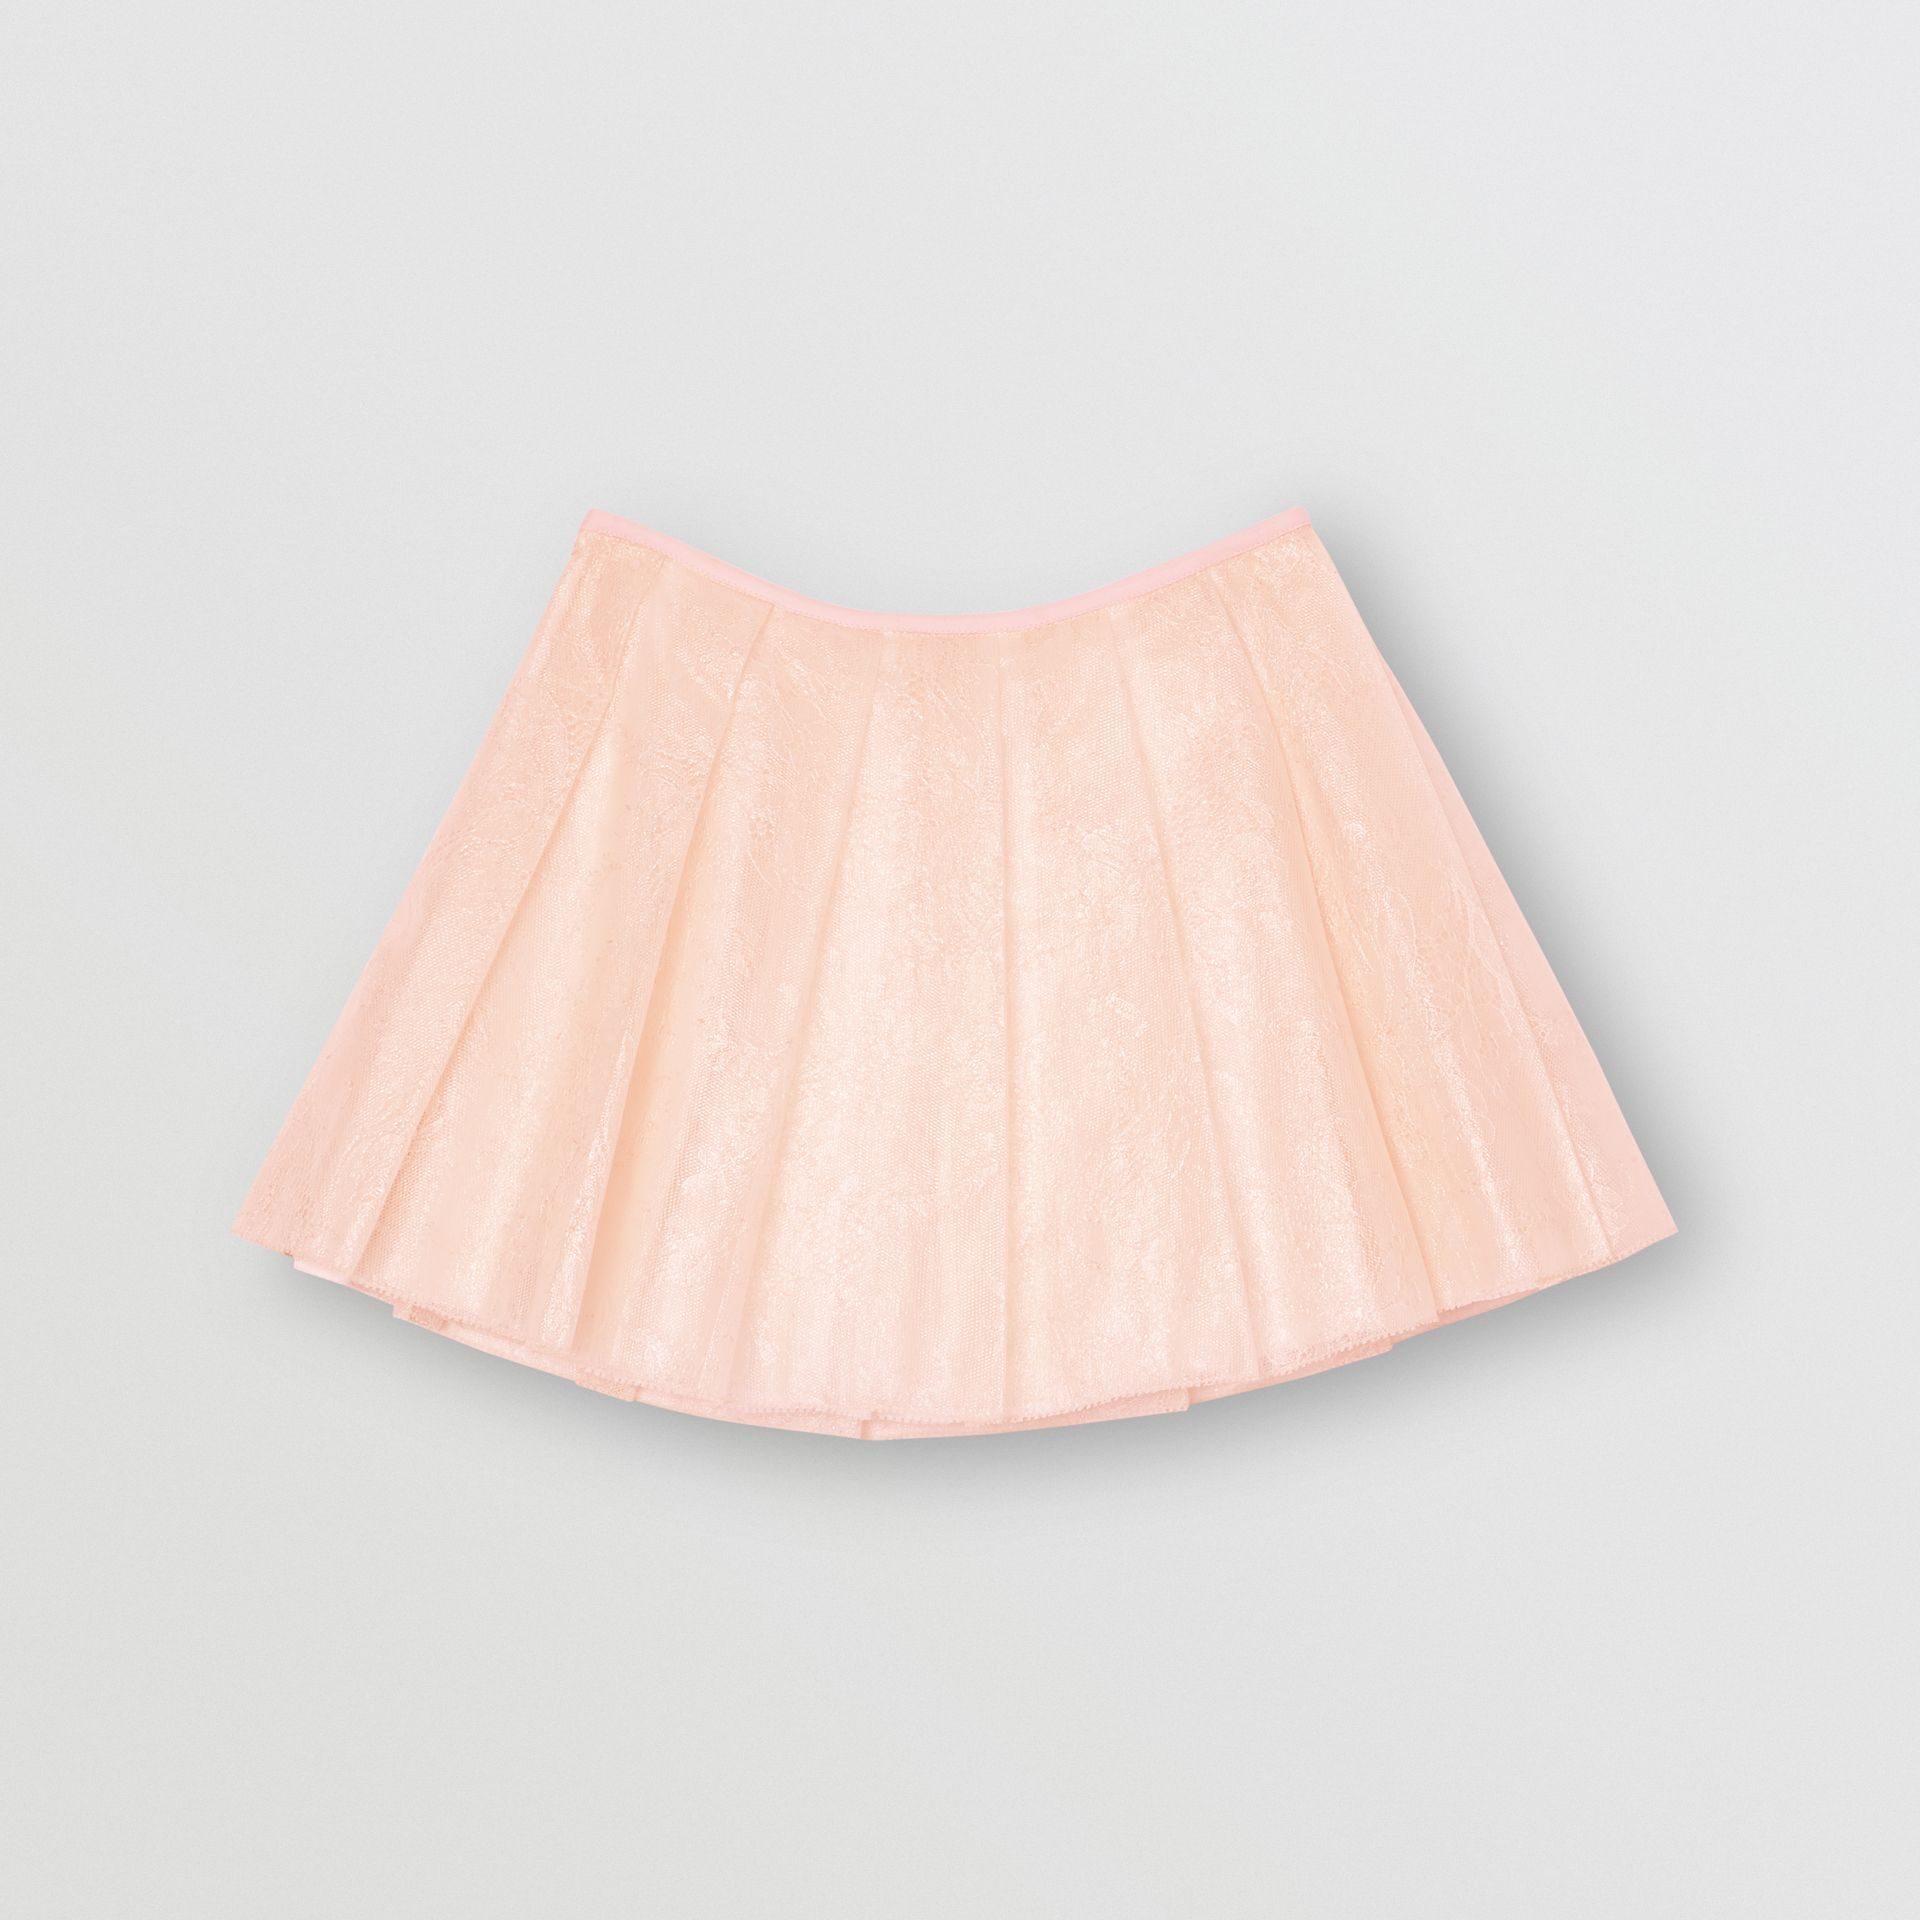 Pleated Laminated Lace Skirt in Pale Pink - Children | Burberry - gallery image 3